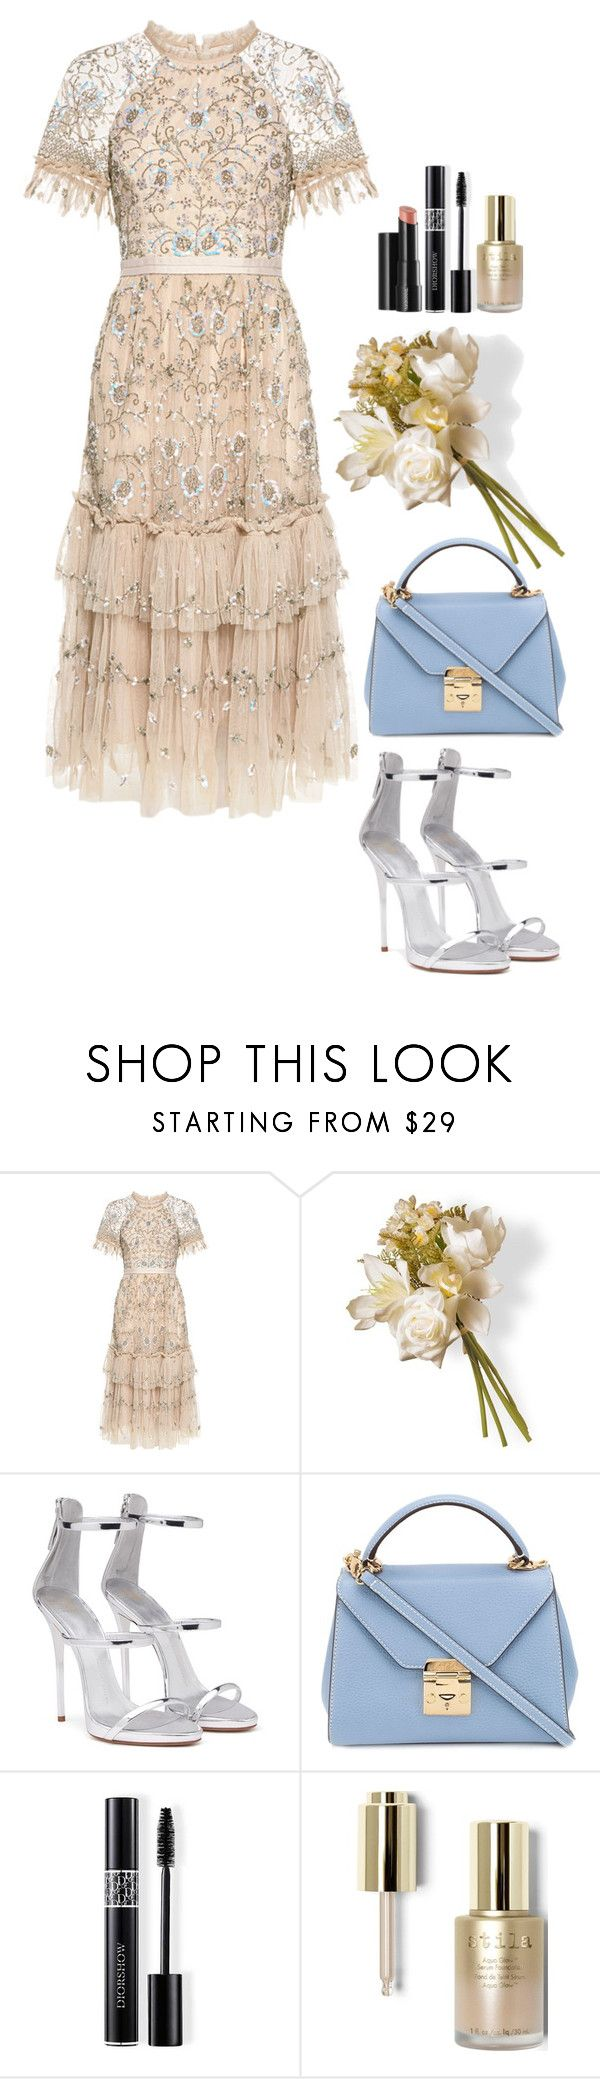 """""""#669"""" by victoria2610 ❤ liked on Polyvore featuring Needle & Thread, National Tree Company, Giuseppe Zanotti, Mark Cross, Christian Dior, Arbonne and Stila"""